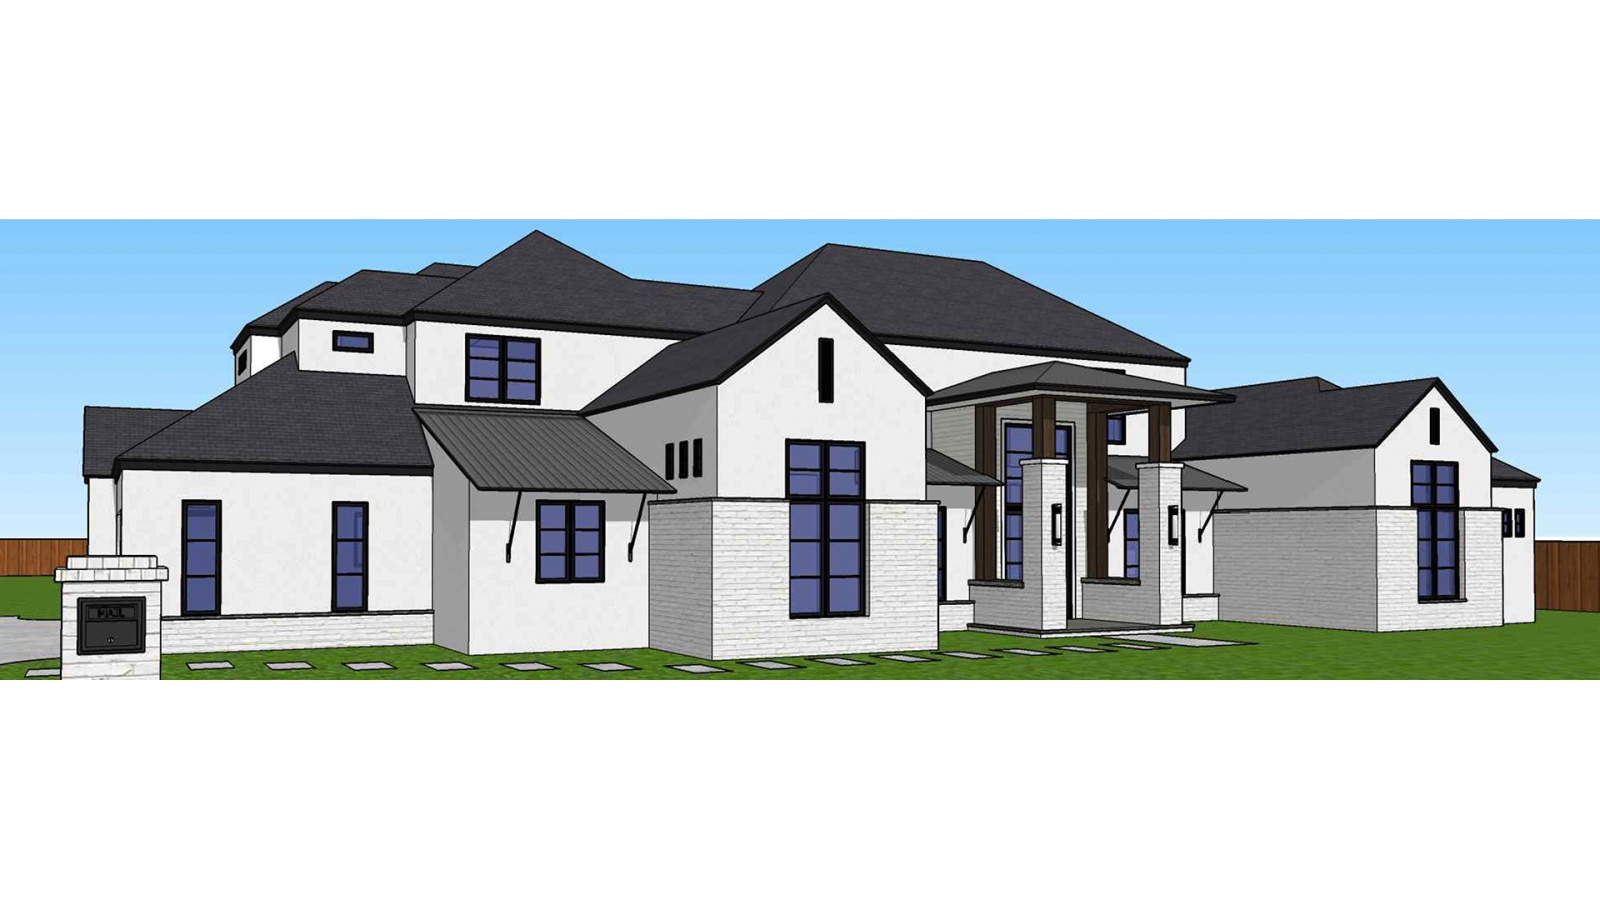 4 Bedrooms Bedrooms, ,4 BathroomsBathrooms,Custom Home,Home Plans,1030